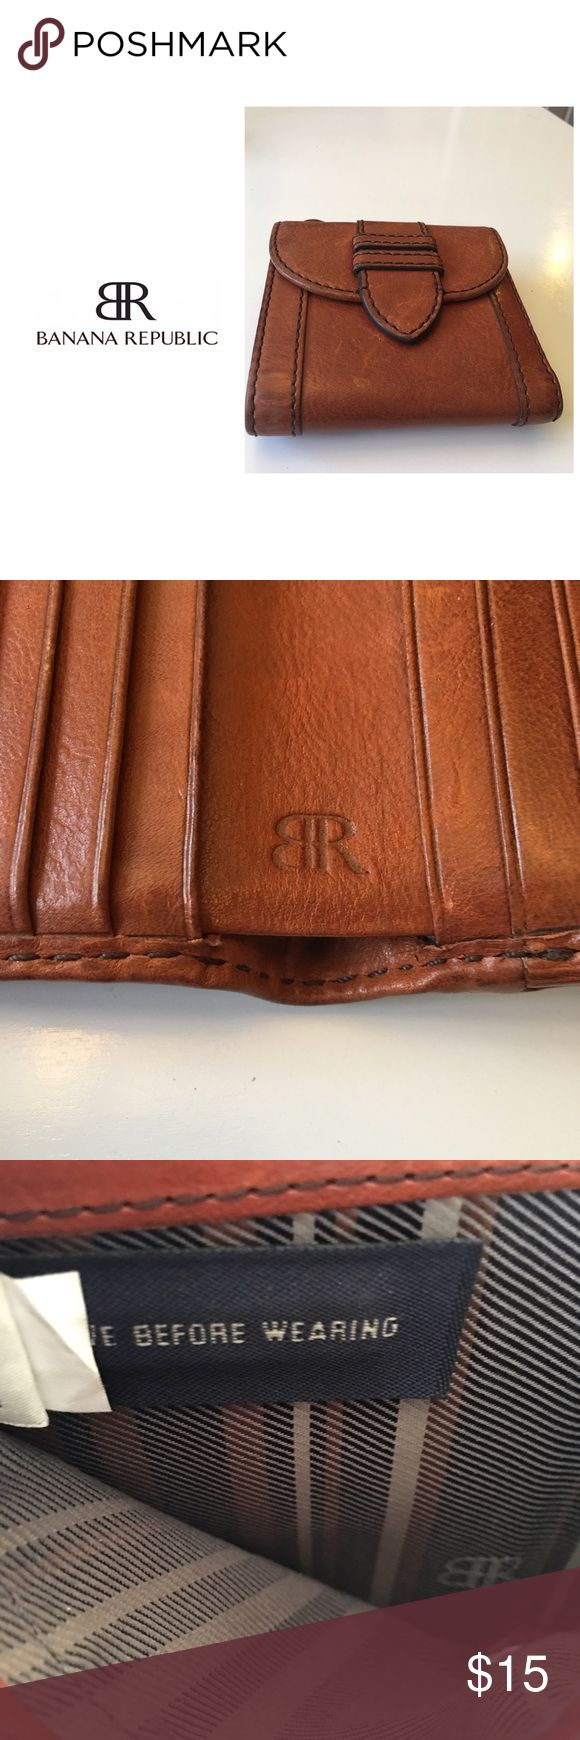 Banana Republic Wallet Soft authentic leather wallet - 10 credit card slots - two cash pockets - zipper change pocket - plaid interior - Great Condition Banana Republic Bags Wallets